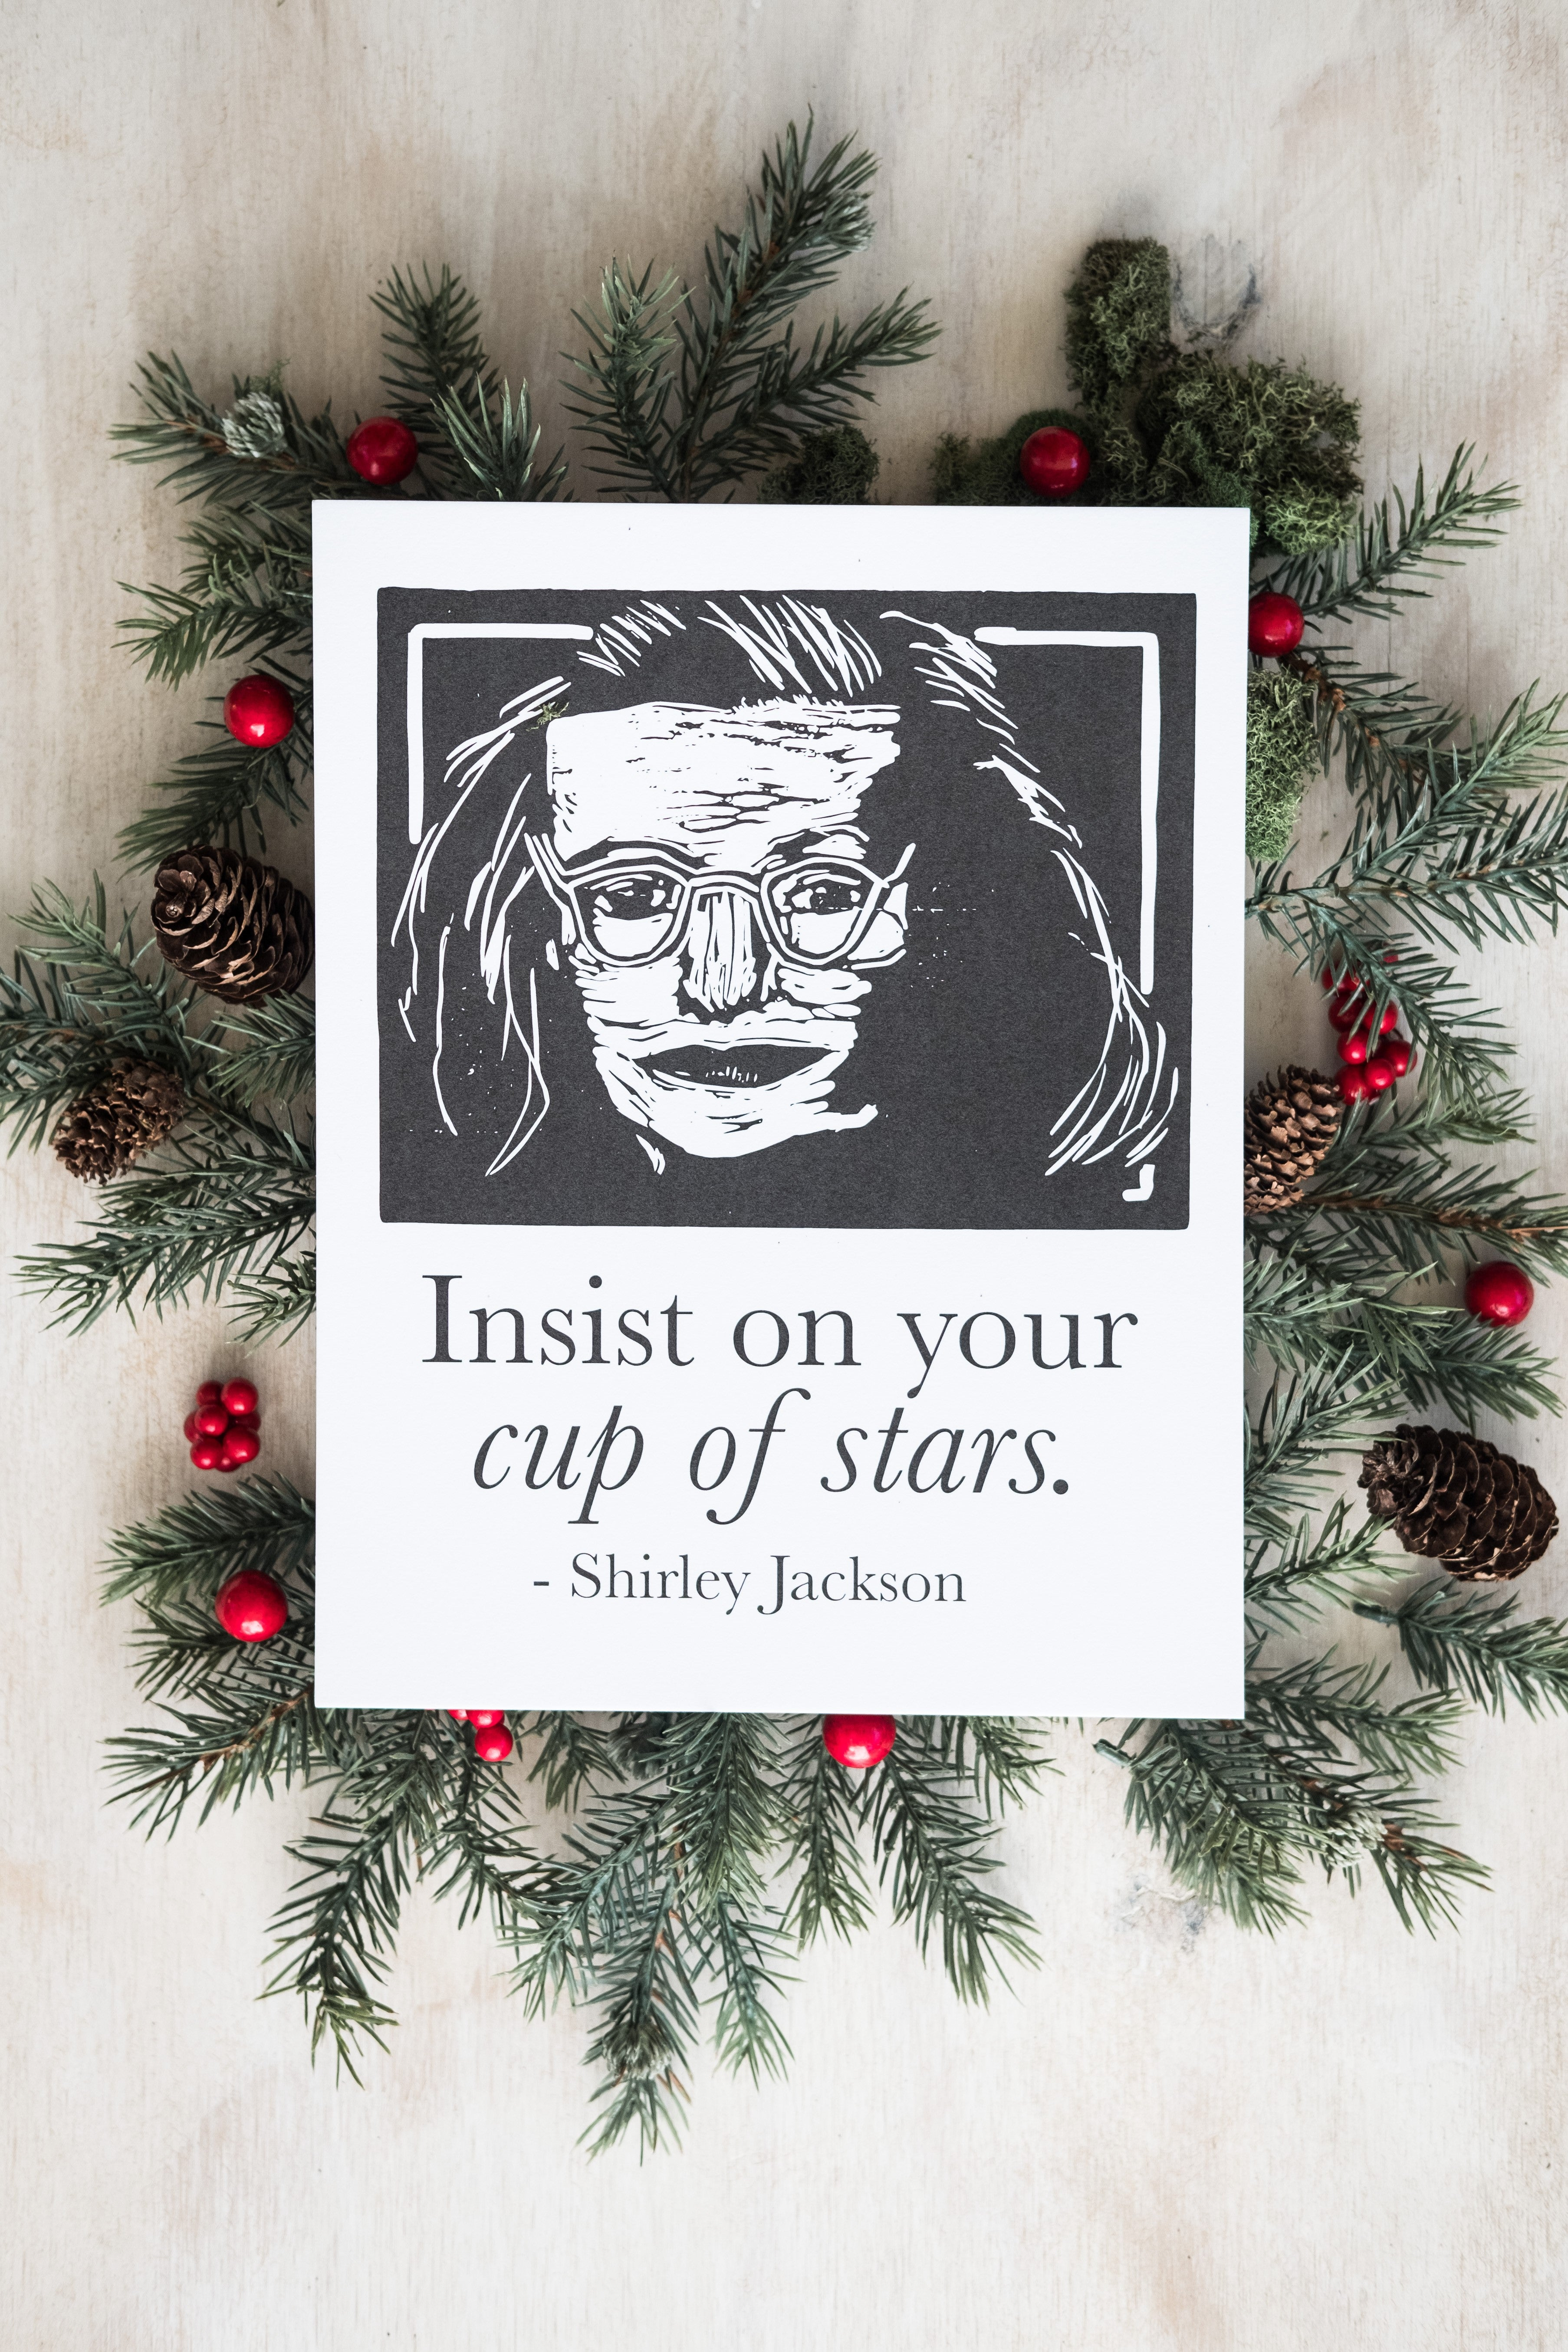 Shirley Jackson Art Print poster with quote Literary Gift by Eastgrove Studio